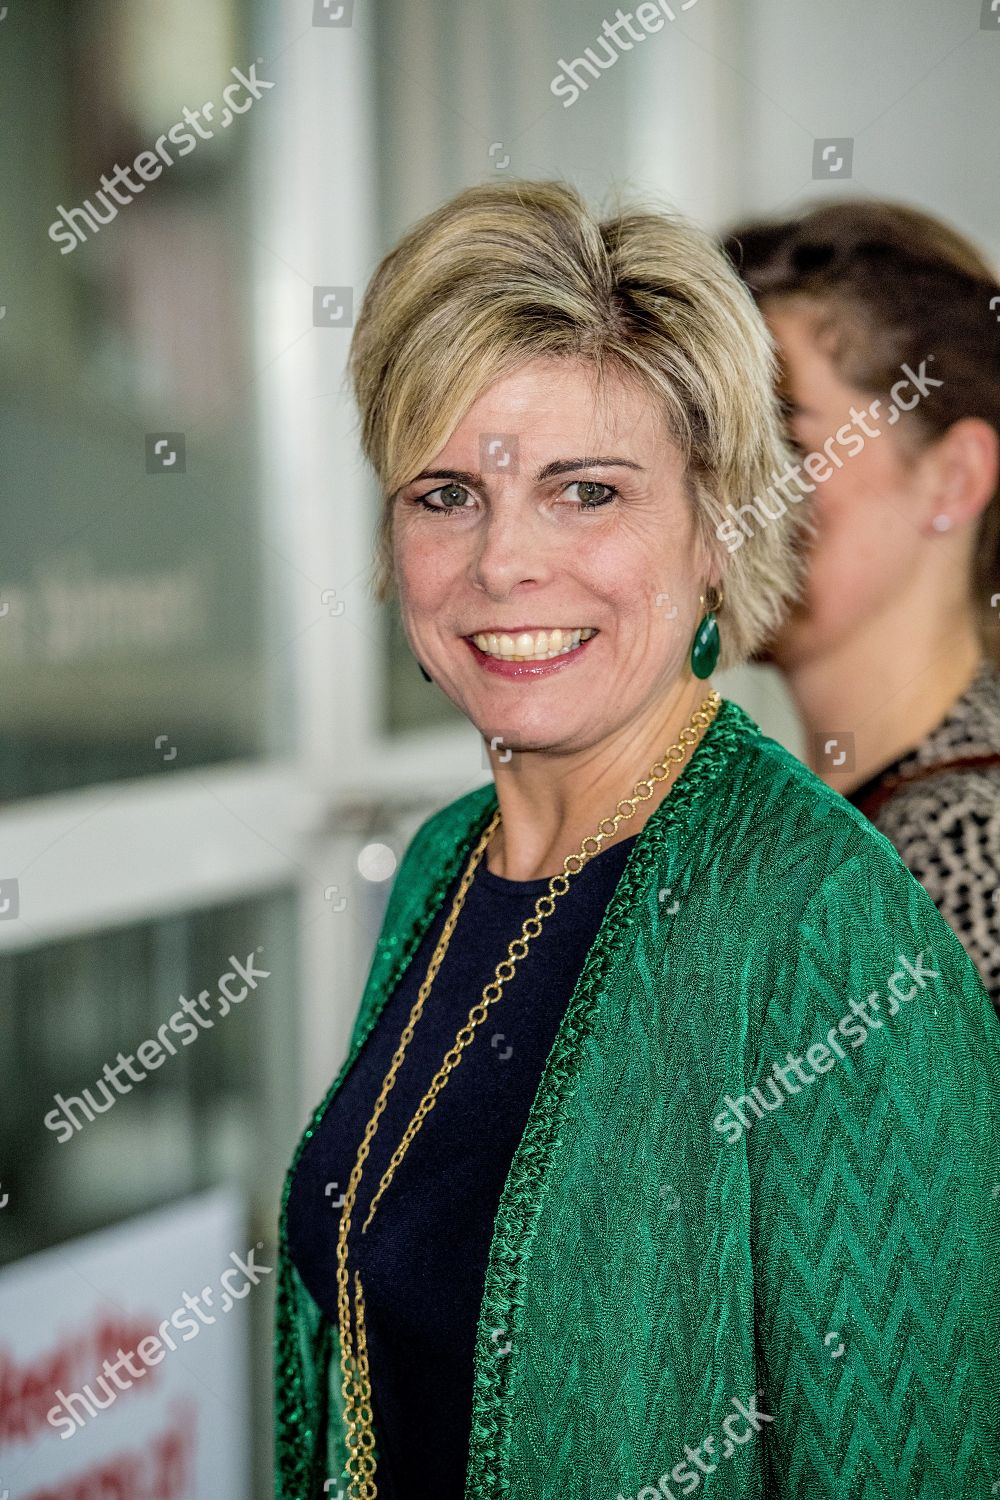 Princess Laurentien of the Netherlands awards the TaalHelden Prize, Rotterdam, The Netherlands - 25 Jan 2018: стоковое фото